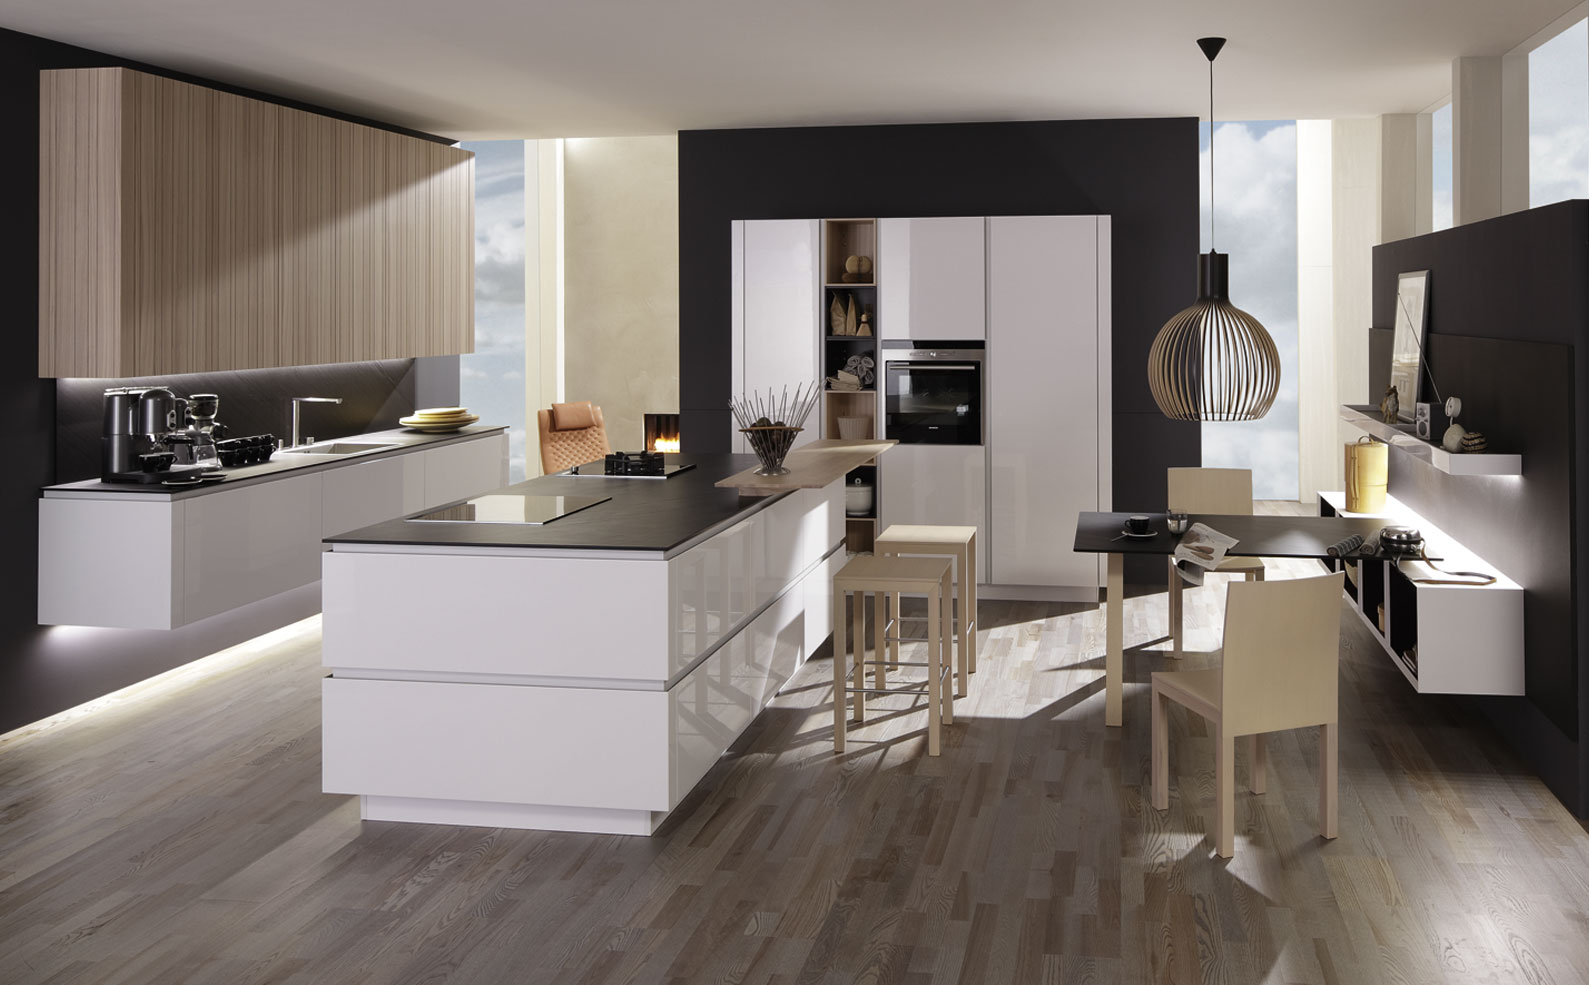 Matching Modern Kitchen Designs From Rational Interior